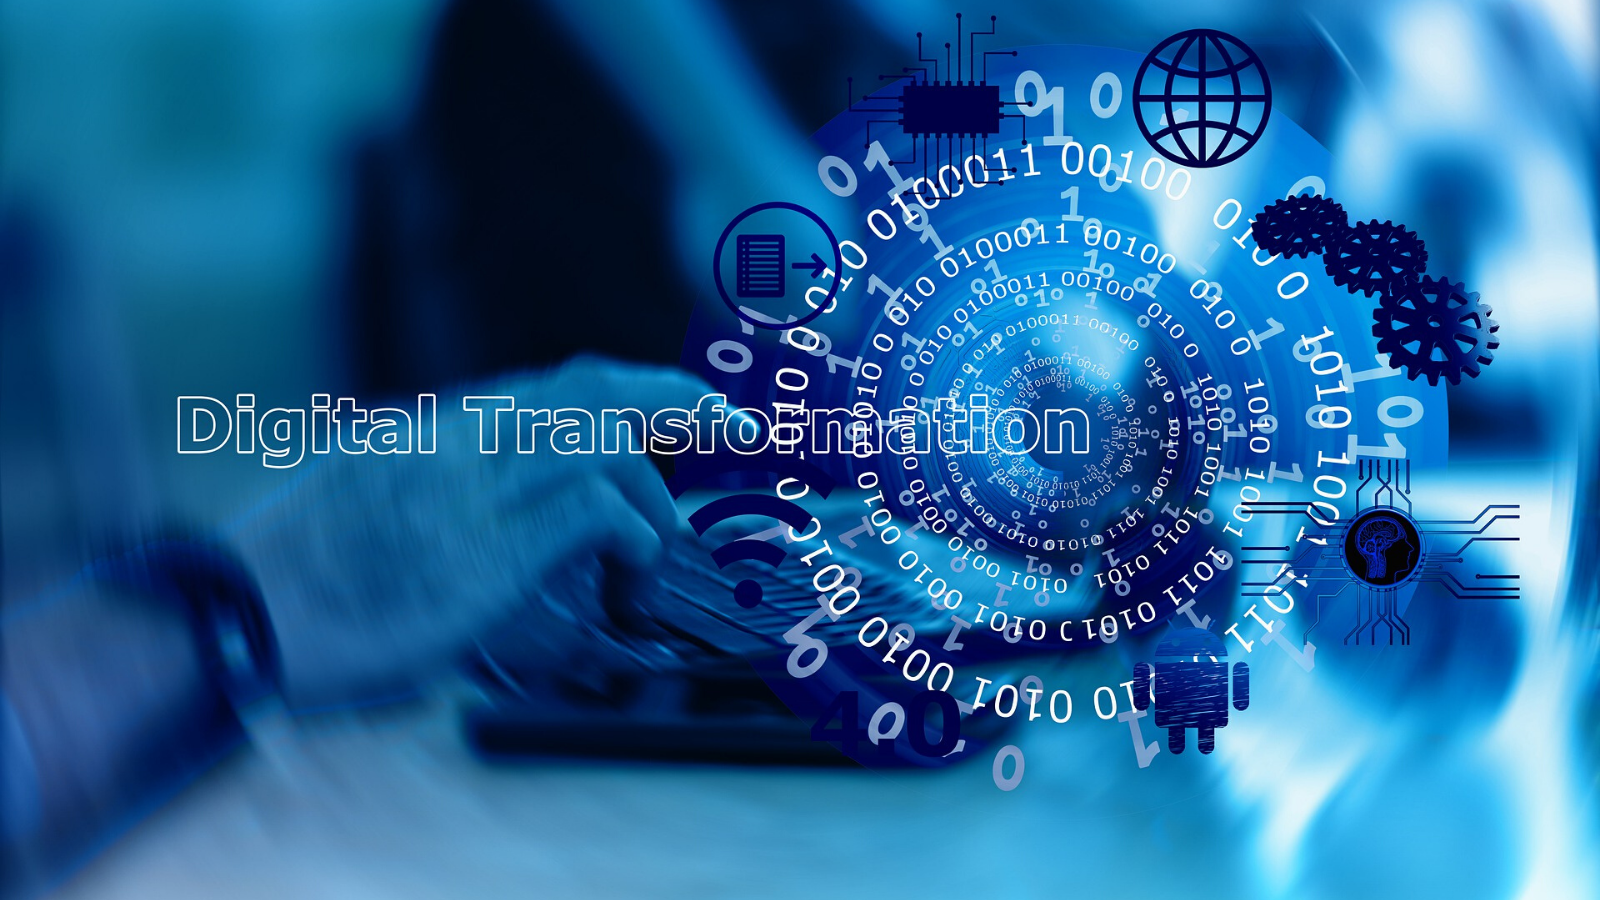 Digital transformation at Speed background